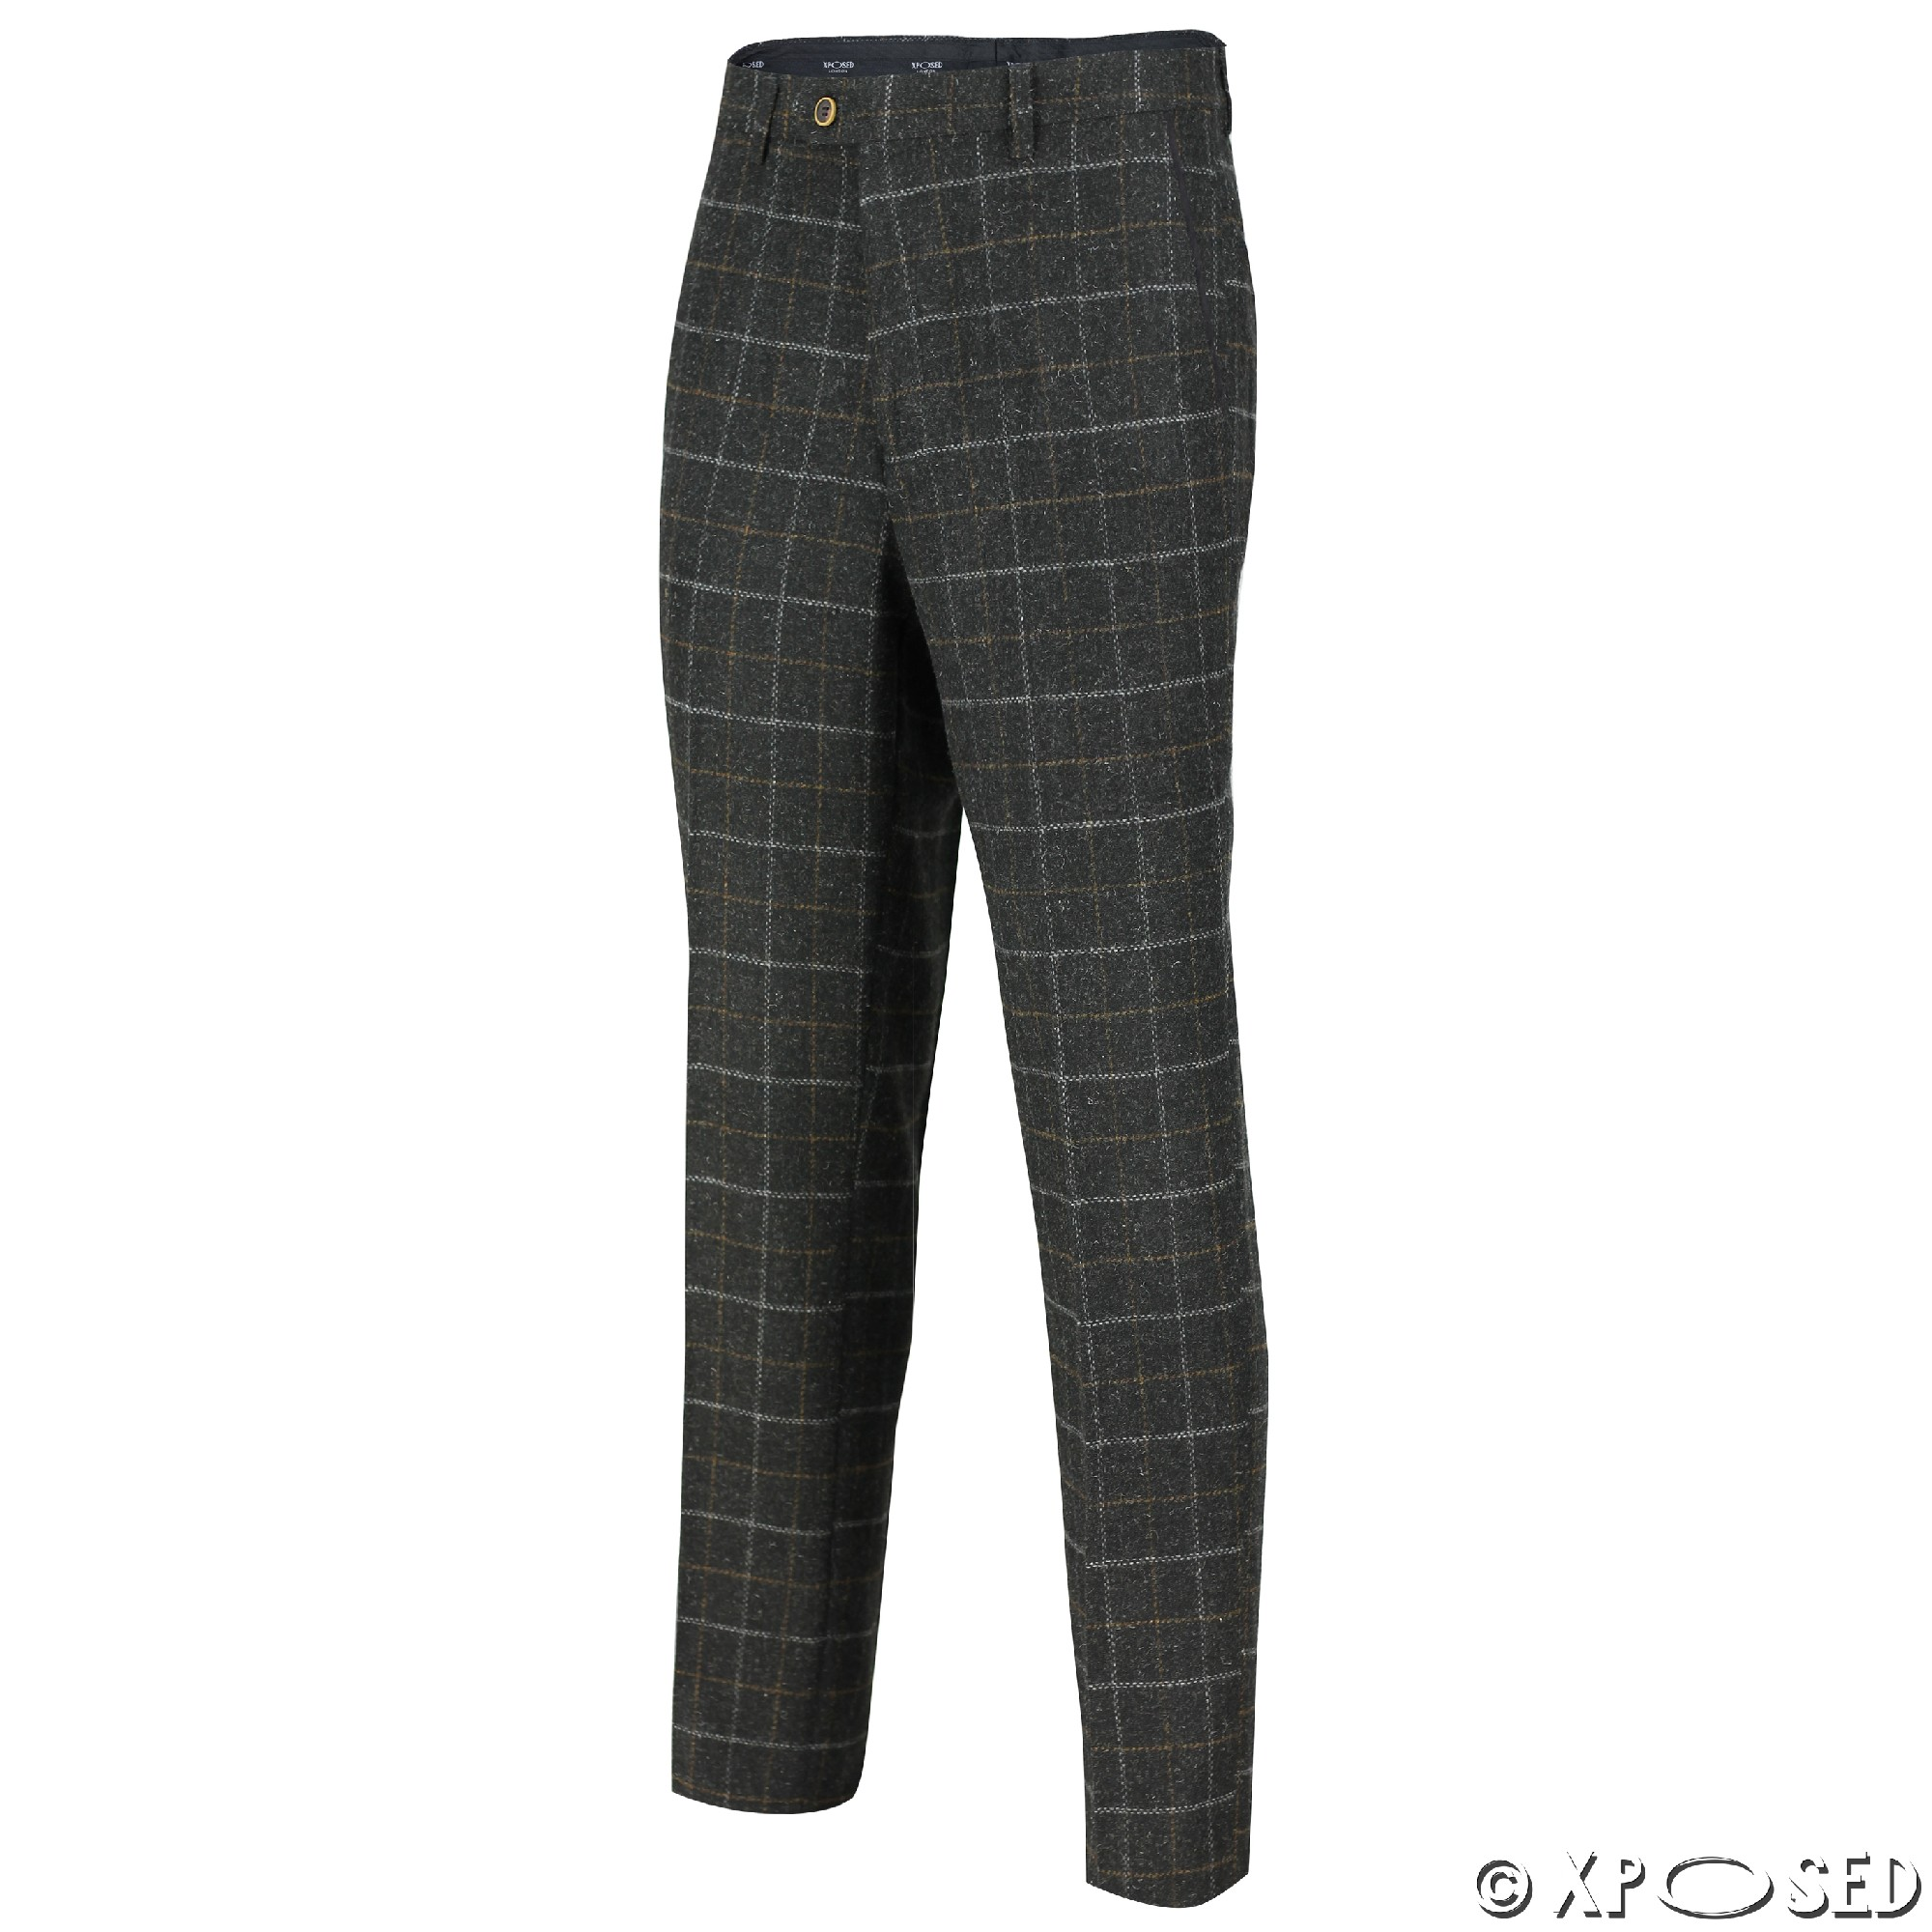 Men's Kristian Tweed Flat Front Trouser $ 00 Prime. Yunjia. Solid Charcoal Classic Vintage Tweed Herringbone Wool Blend Tailored Men Suit 3 Pieces. from $ 65 5 out of 5 stars 2. Rekucci. Women's Secret Figure Pull-On Knit Straight Pant w/Tummy Control $ 39 99 Prime. out of 5 stars